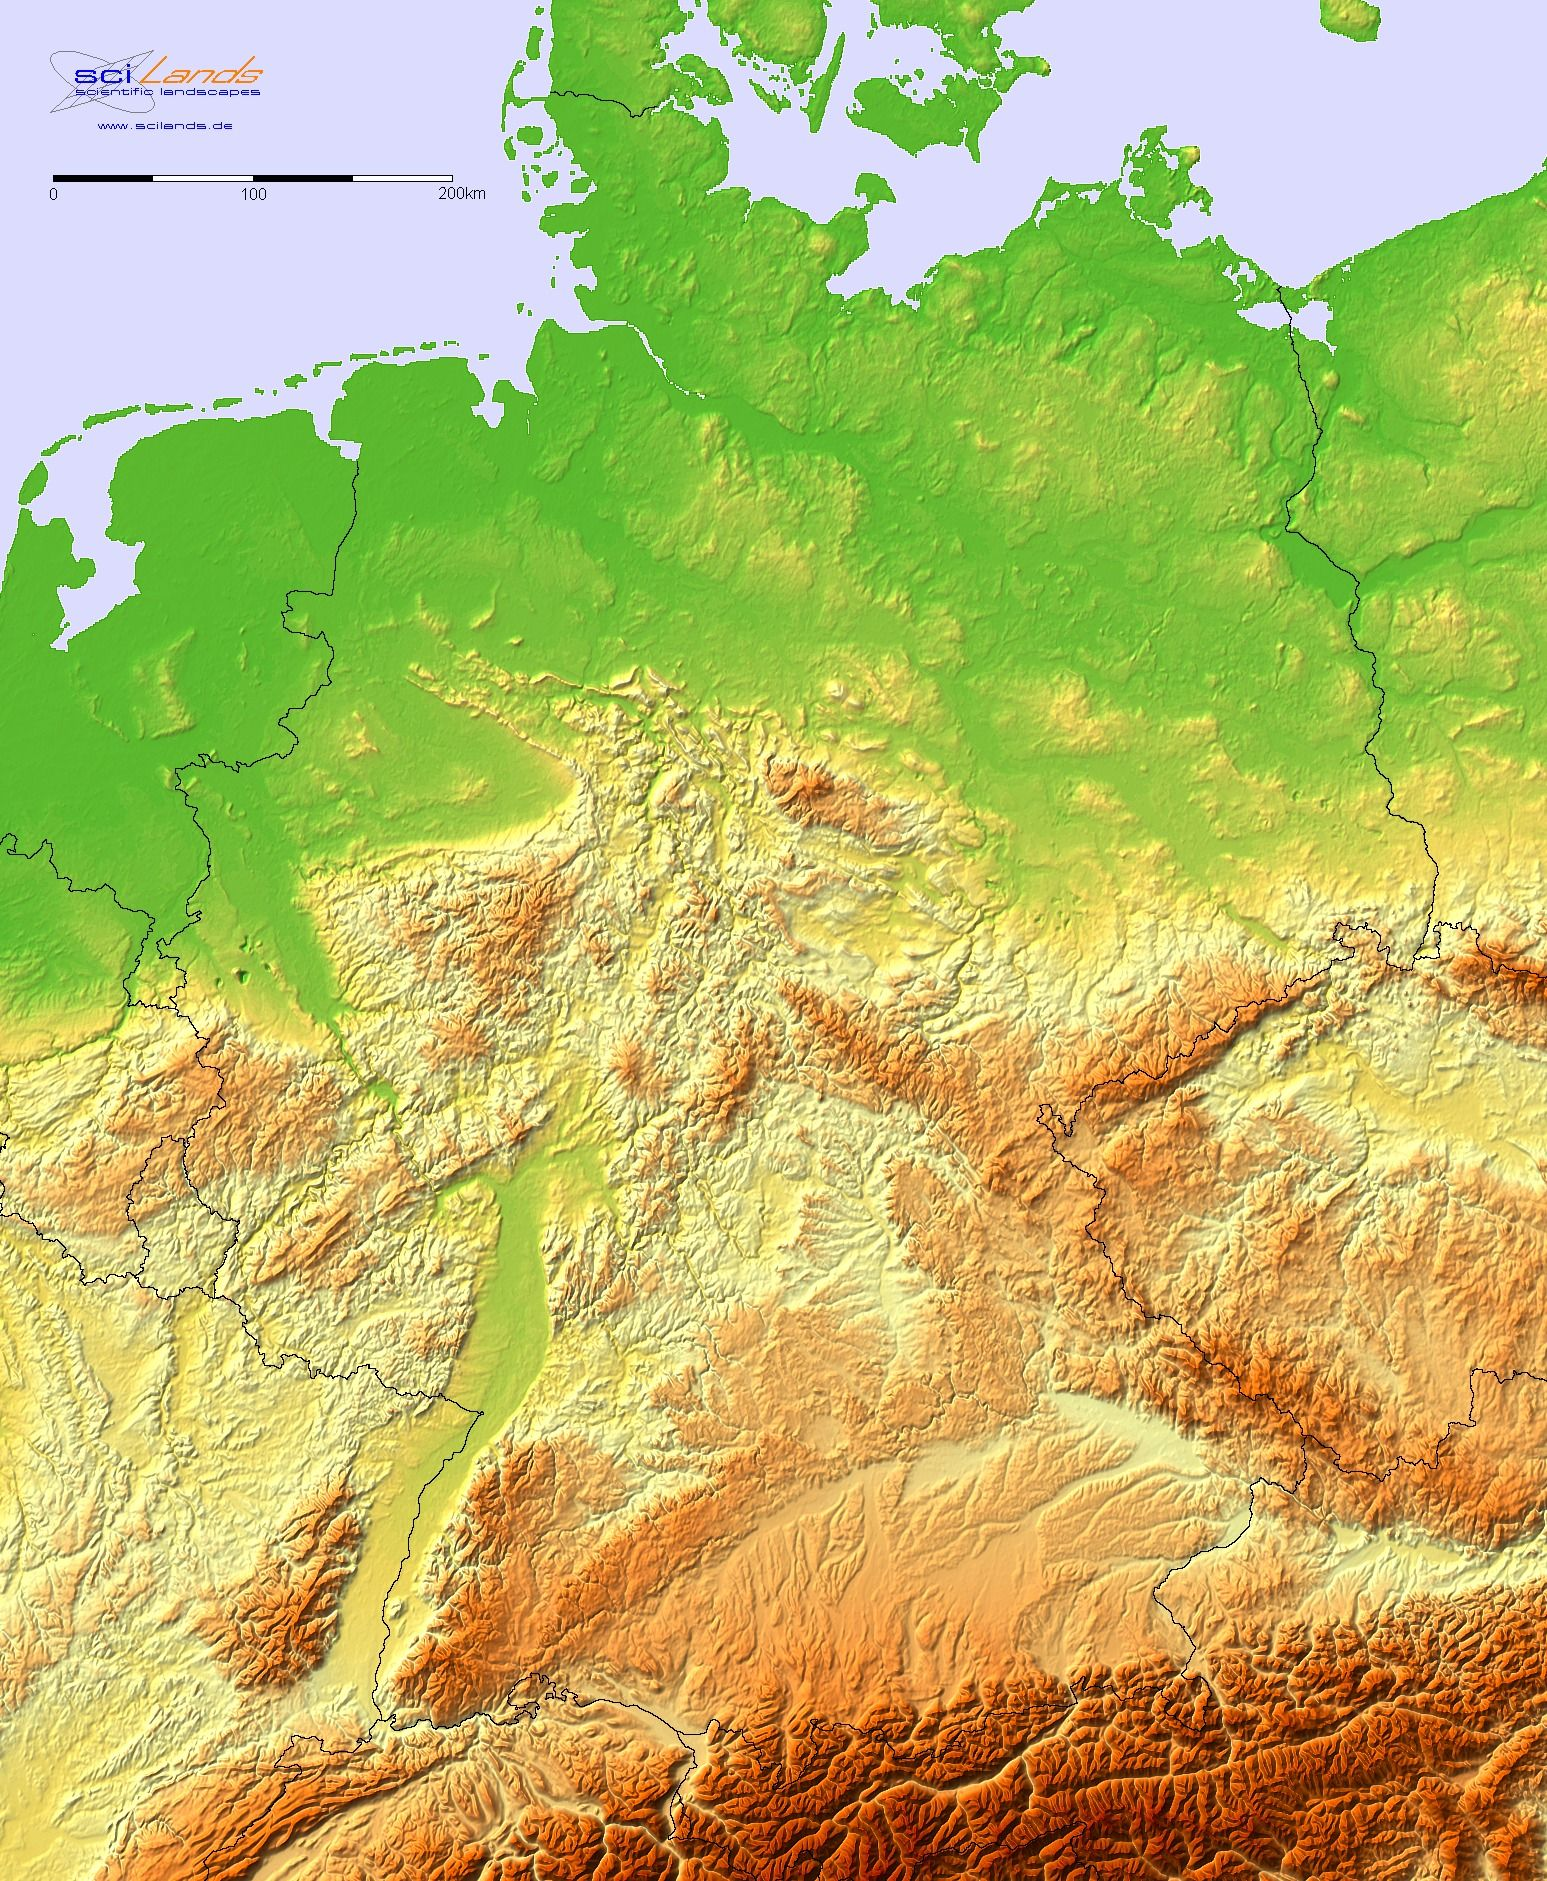 Map Of Germany And Luxembourg.Germany Luxembourg Germany Culture Maps Berlin Brandenburg